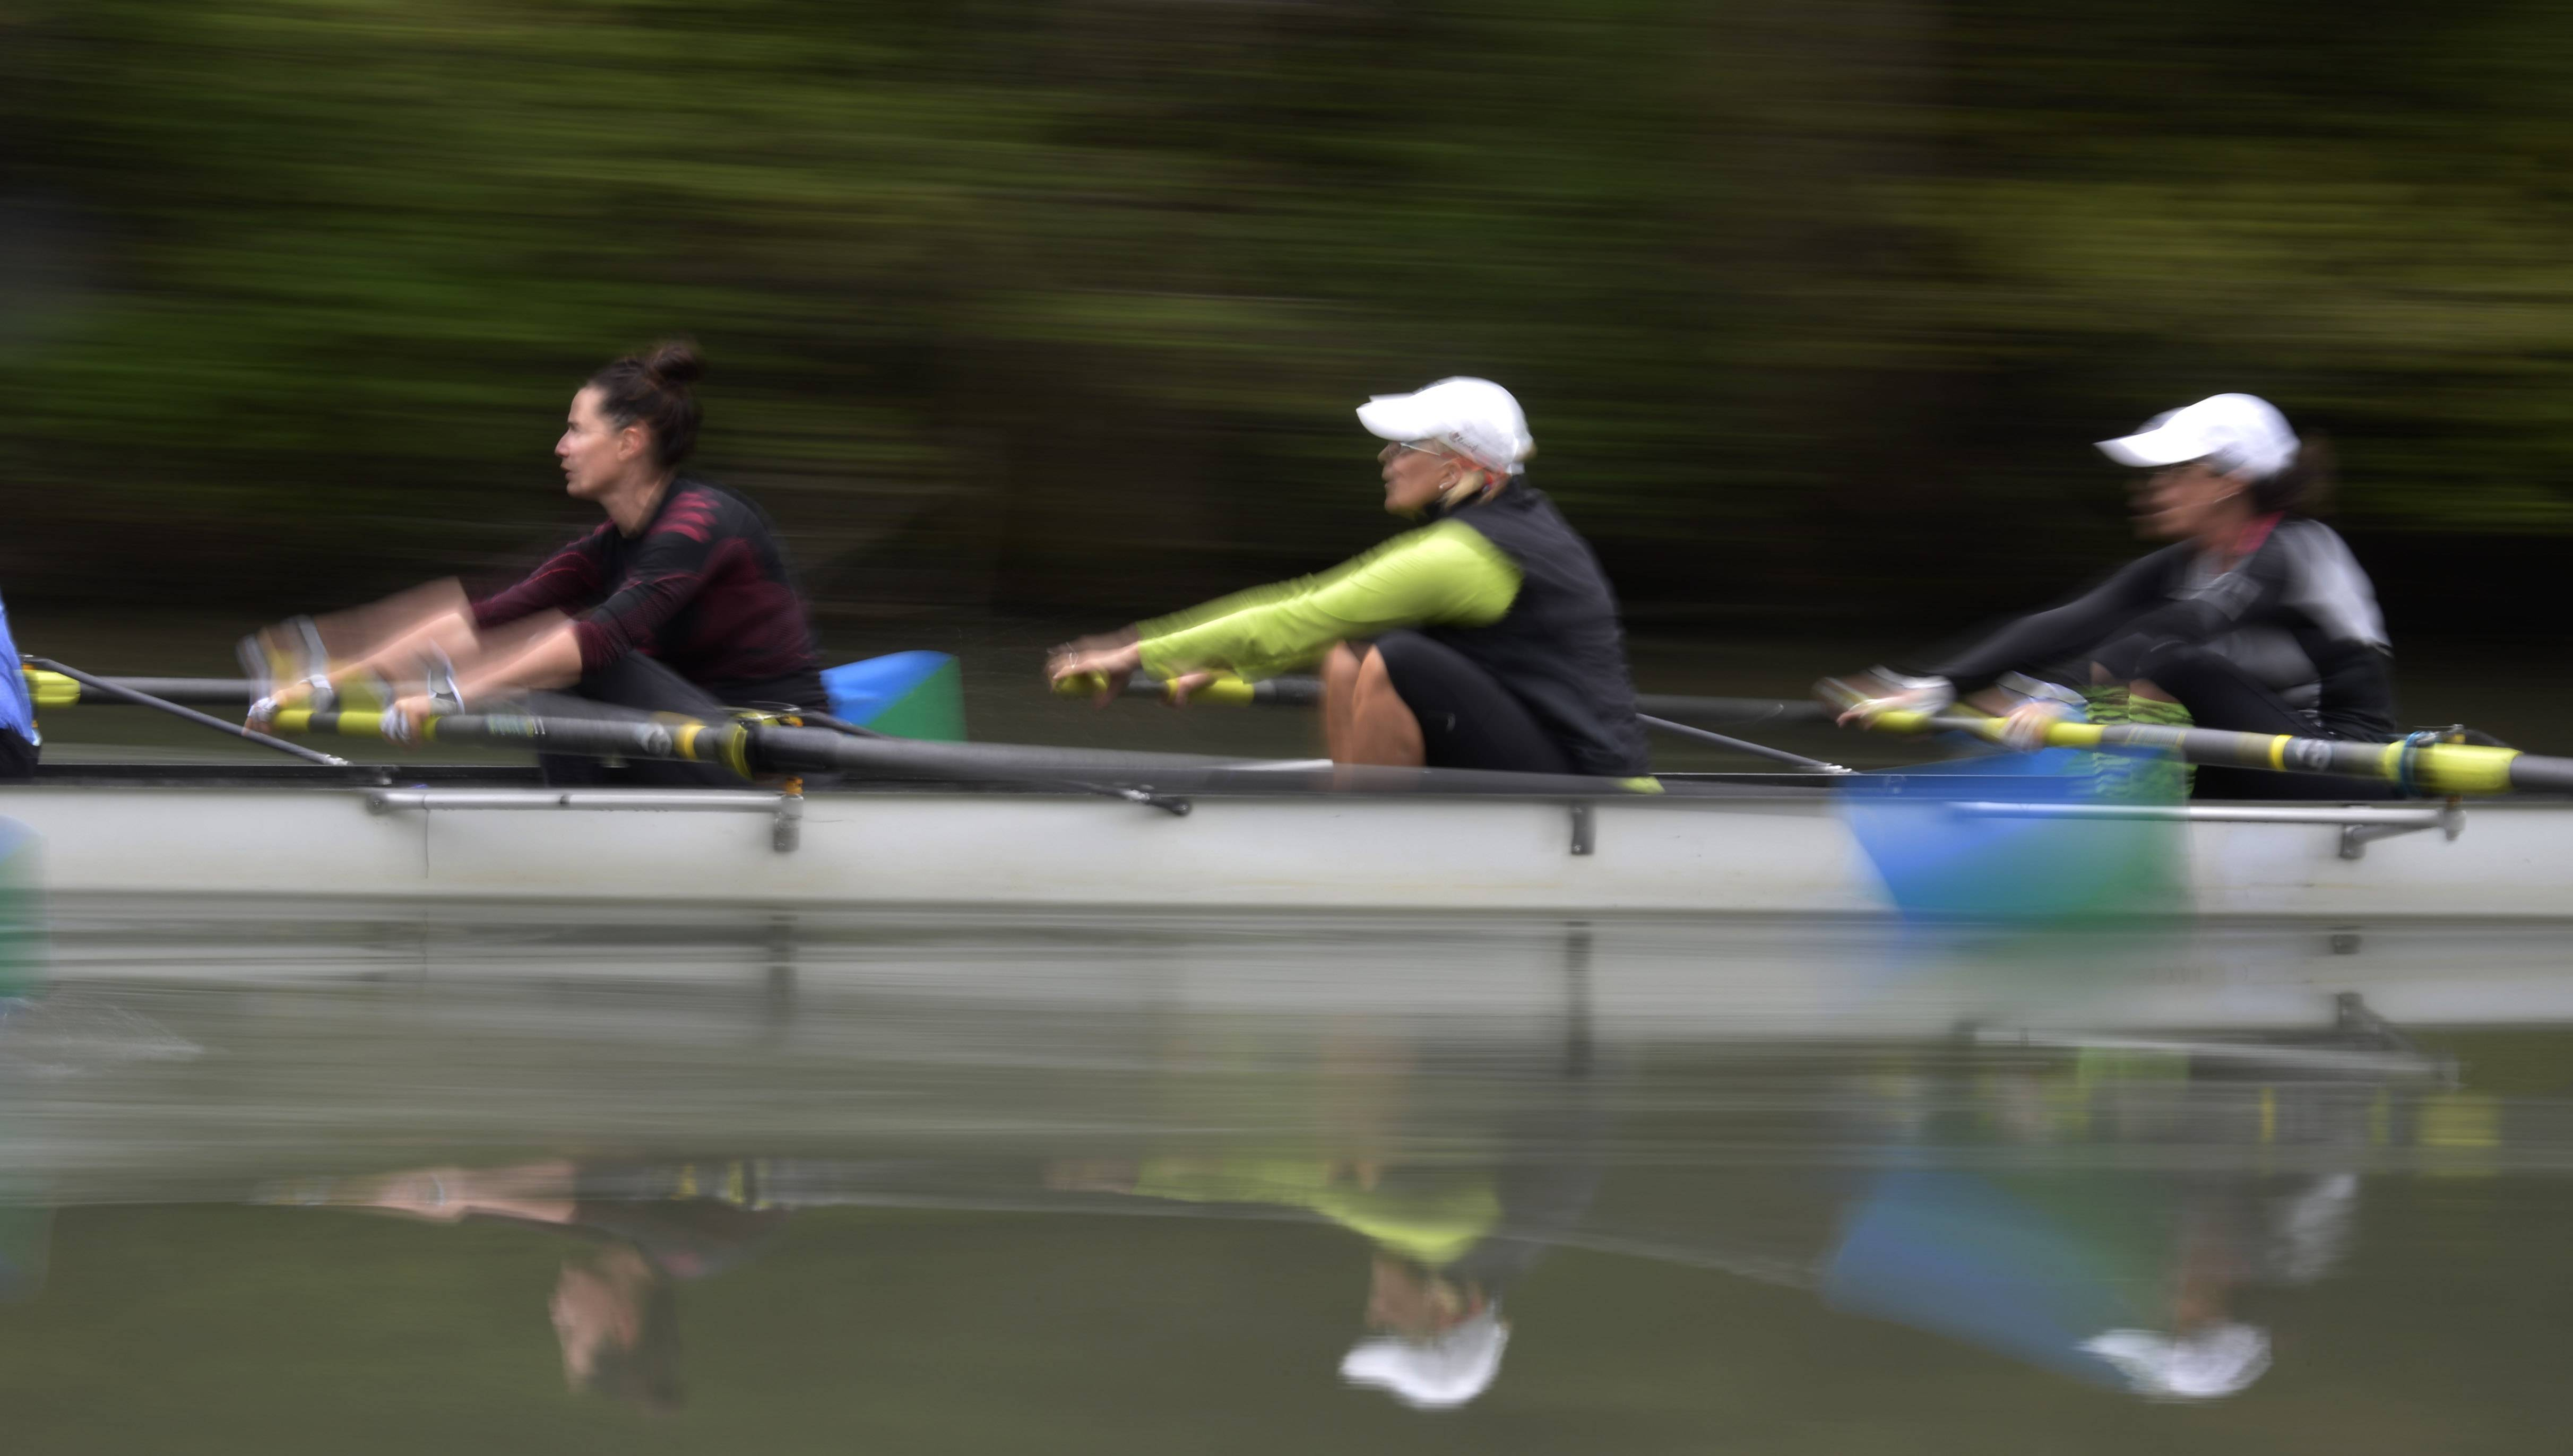 Members of the New Trier Masters rowing club practice on the Chicago River channel in Skokie. The group features women from the ages of 36-73 putting their body, mind and soul into the sport.